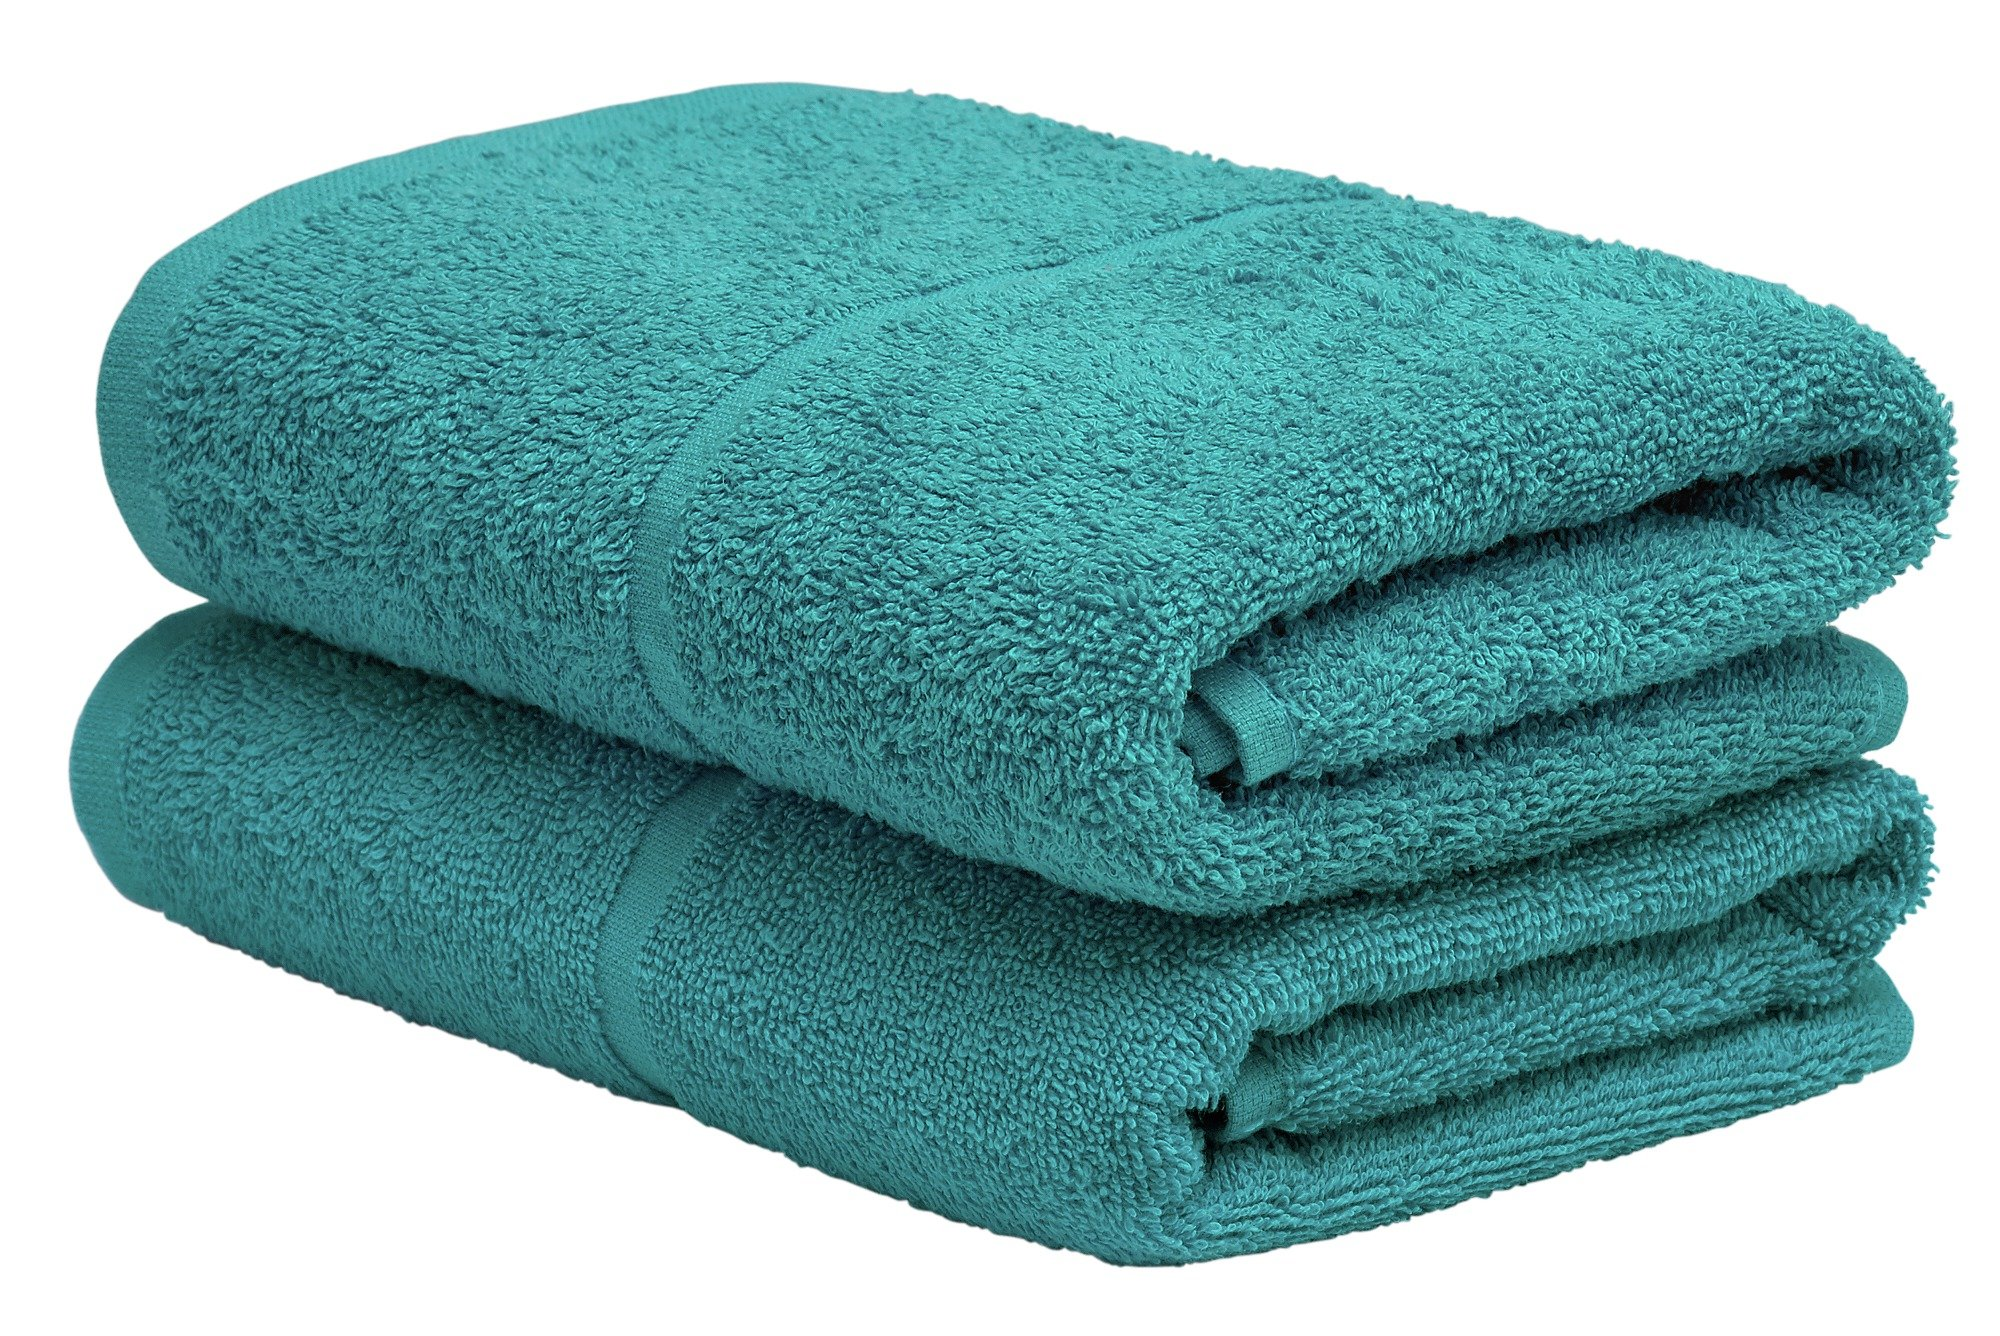 Argos Home Pair of Hand Towels - Teal